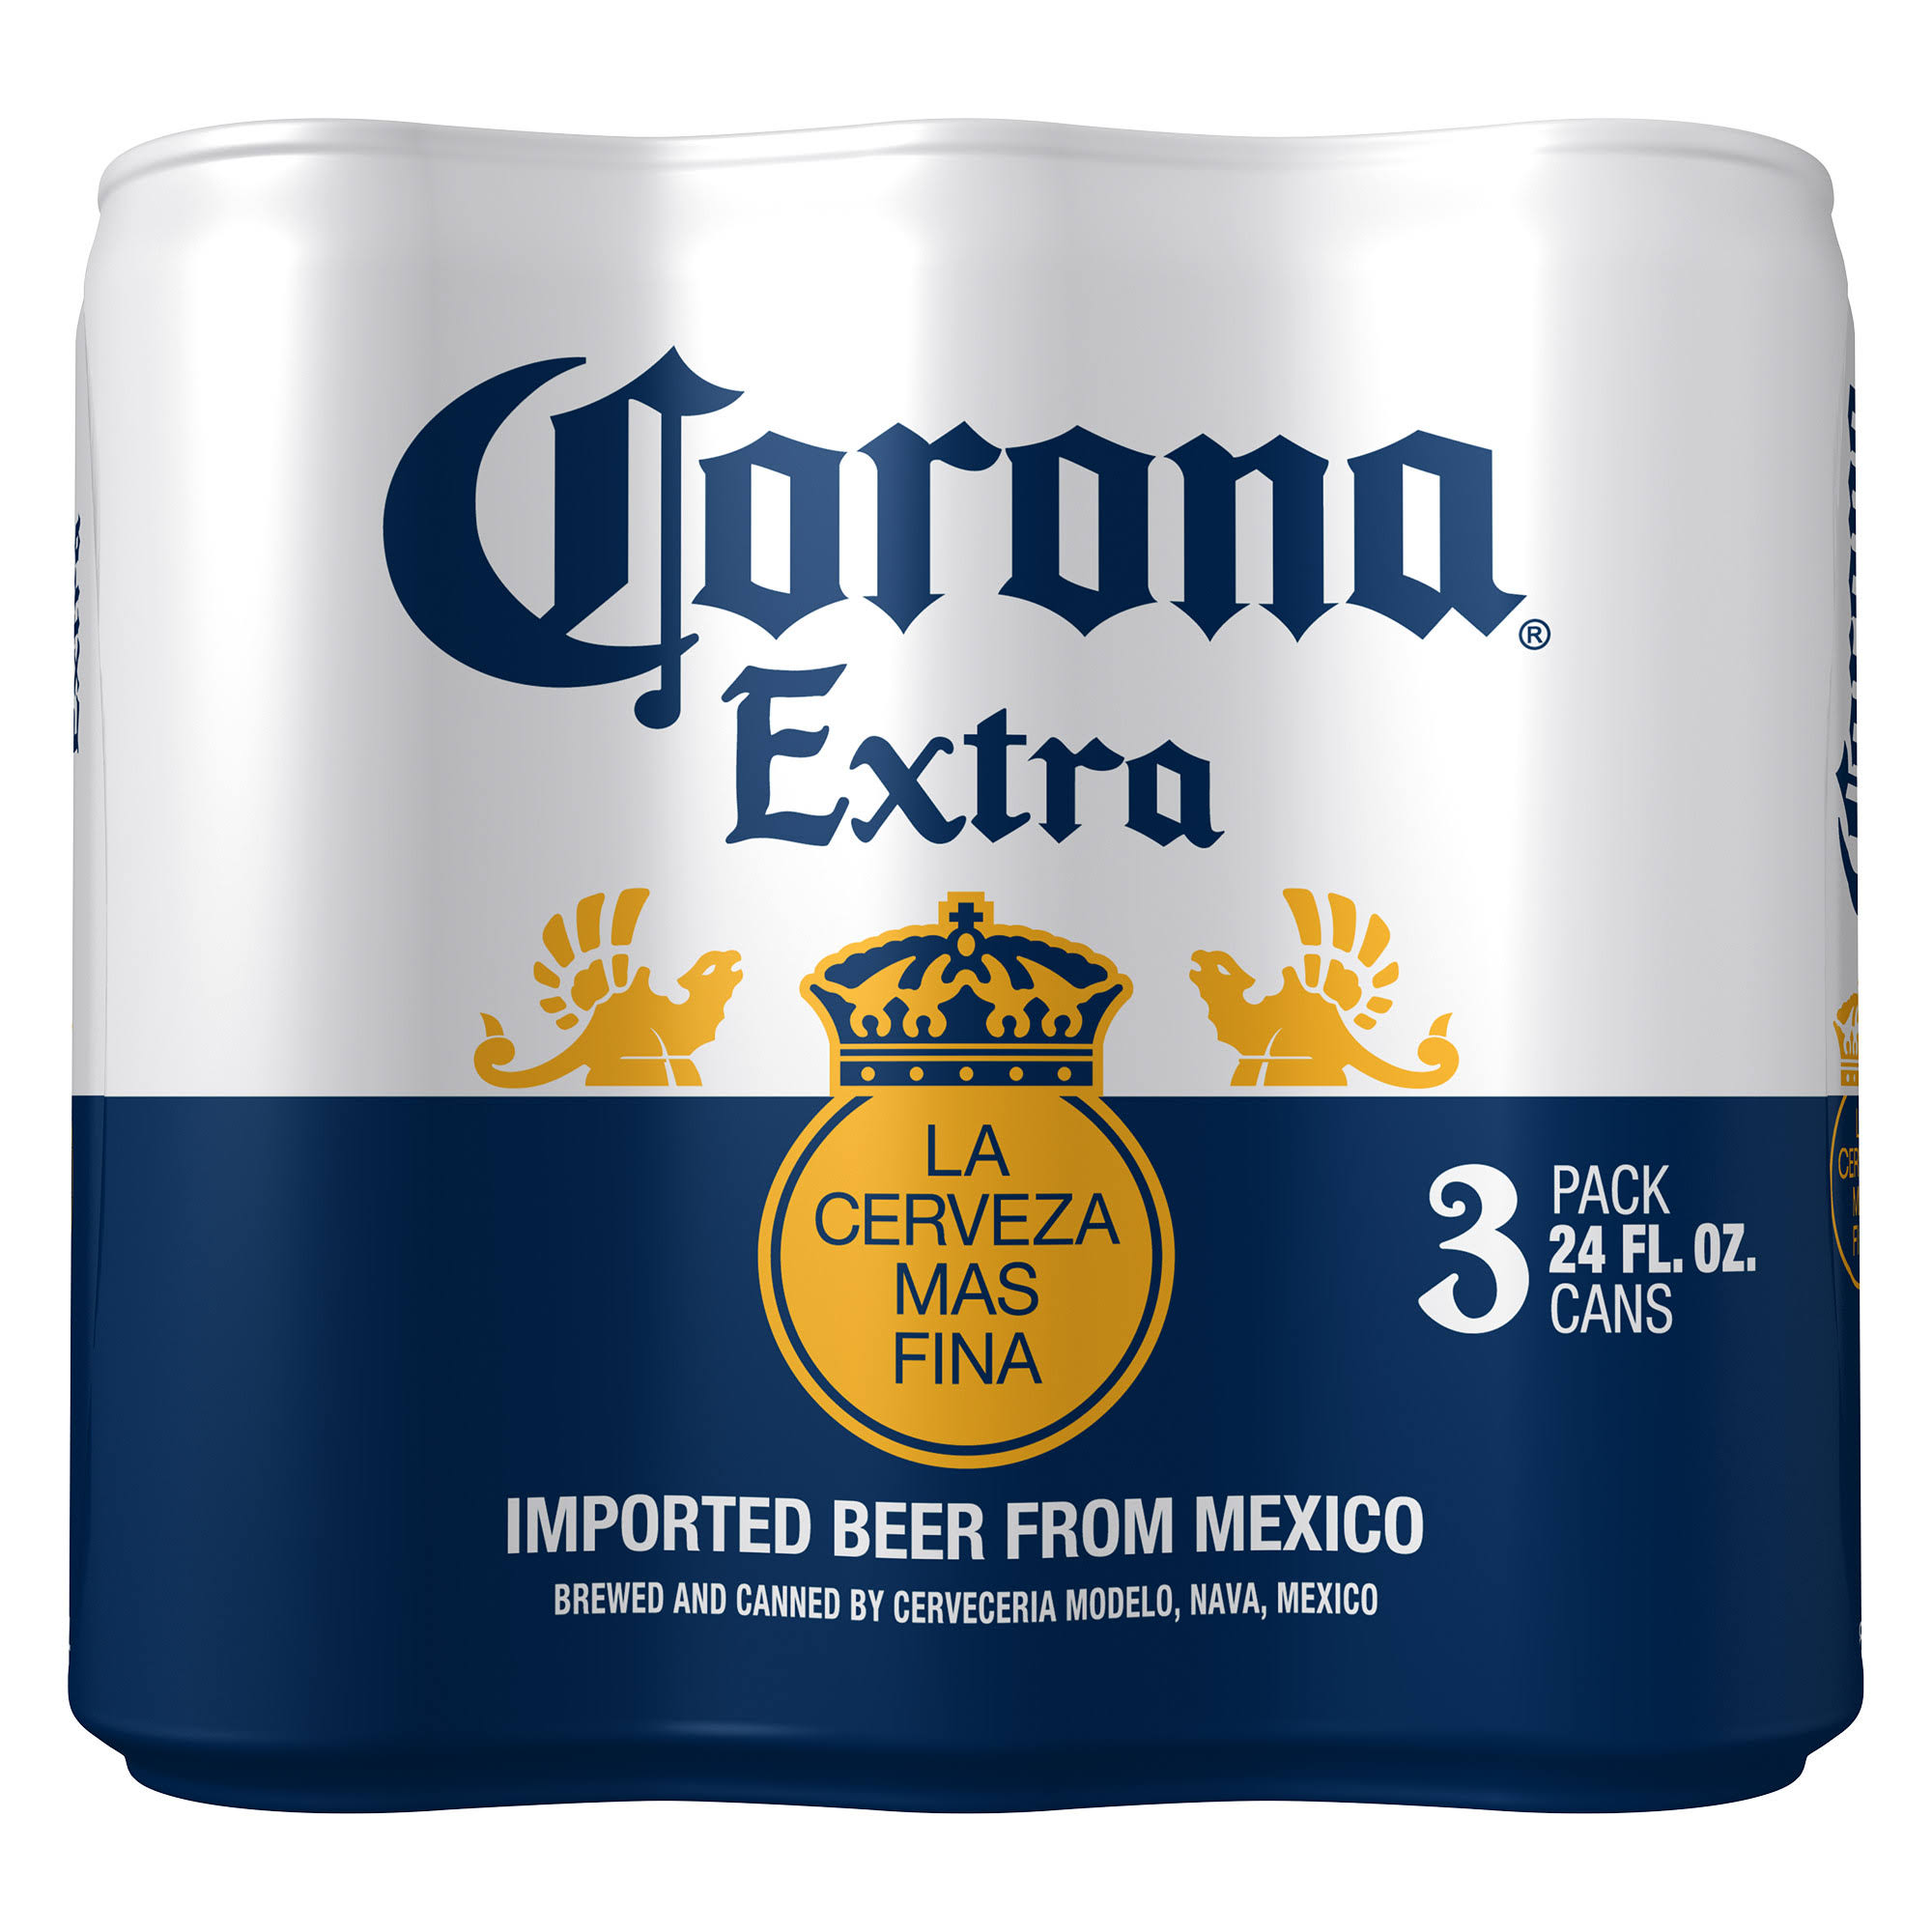 Corona Extra Beer - 3 pack, 24 fl oz cans